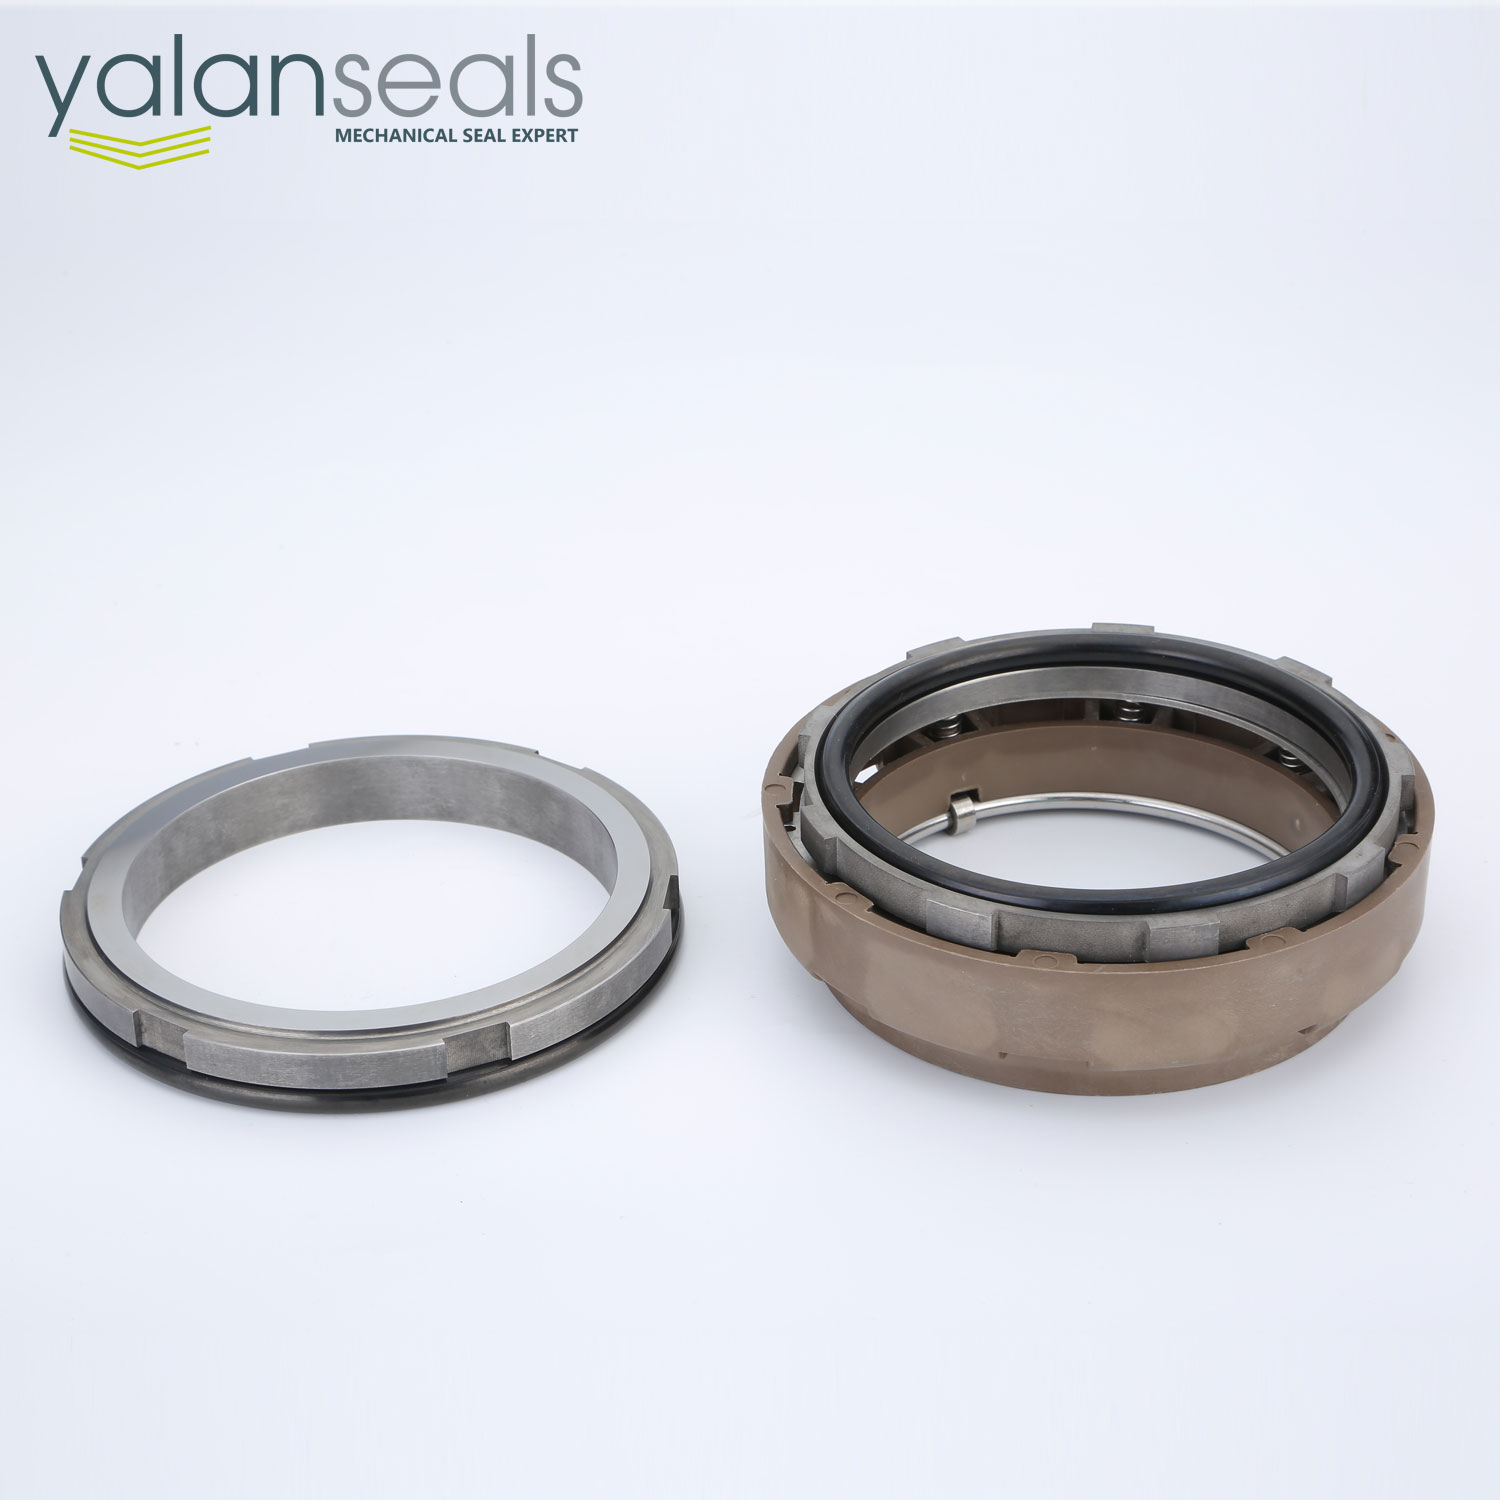 Customized Nonstandard Mechanical Seals for WILO